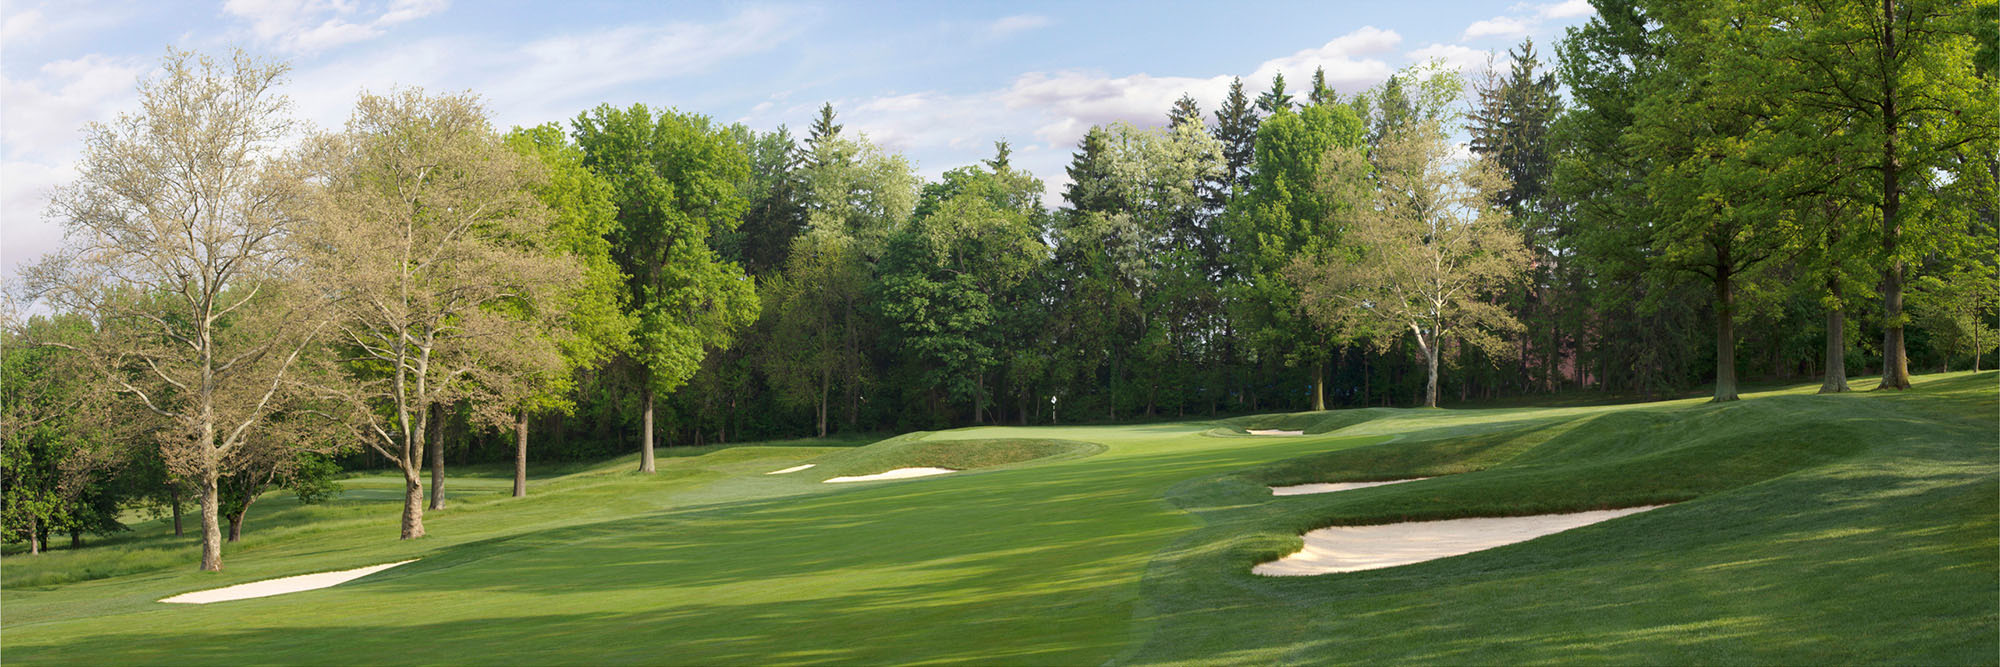 Golf Course Image - Pittsburgh Field Club No. 13